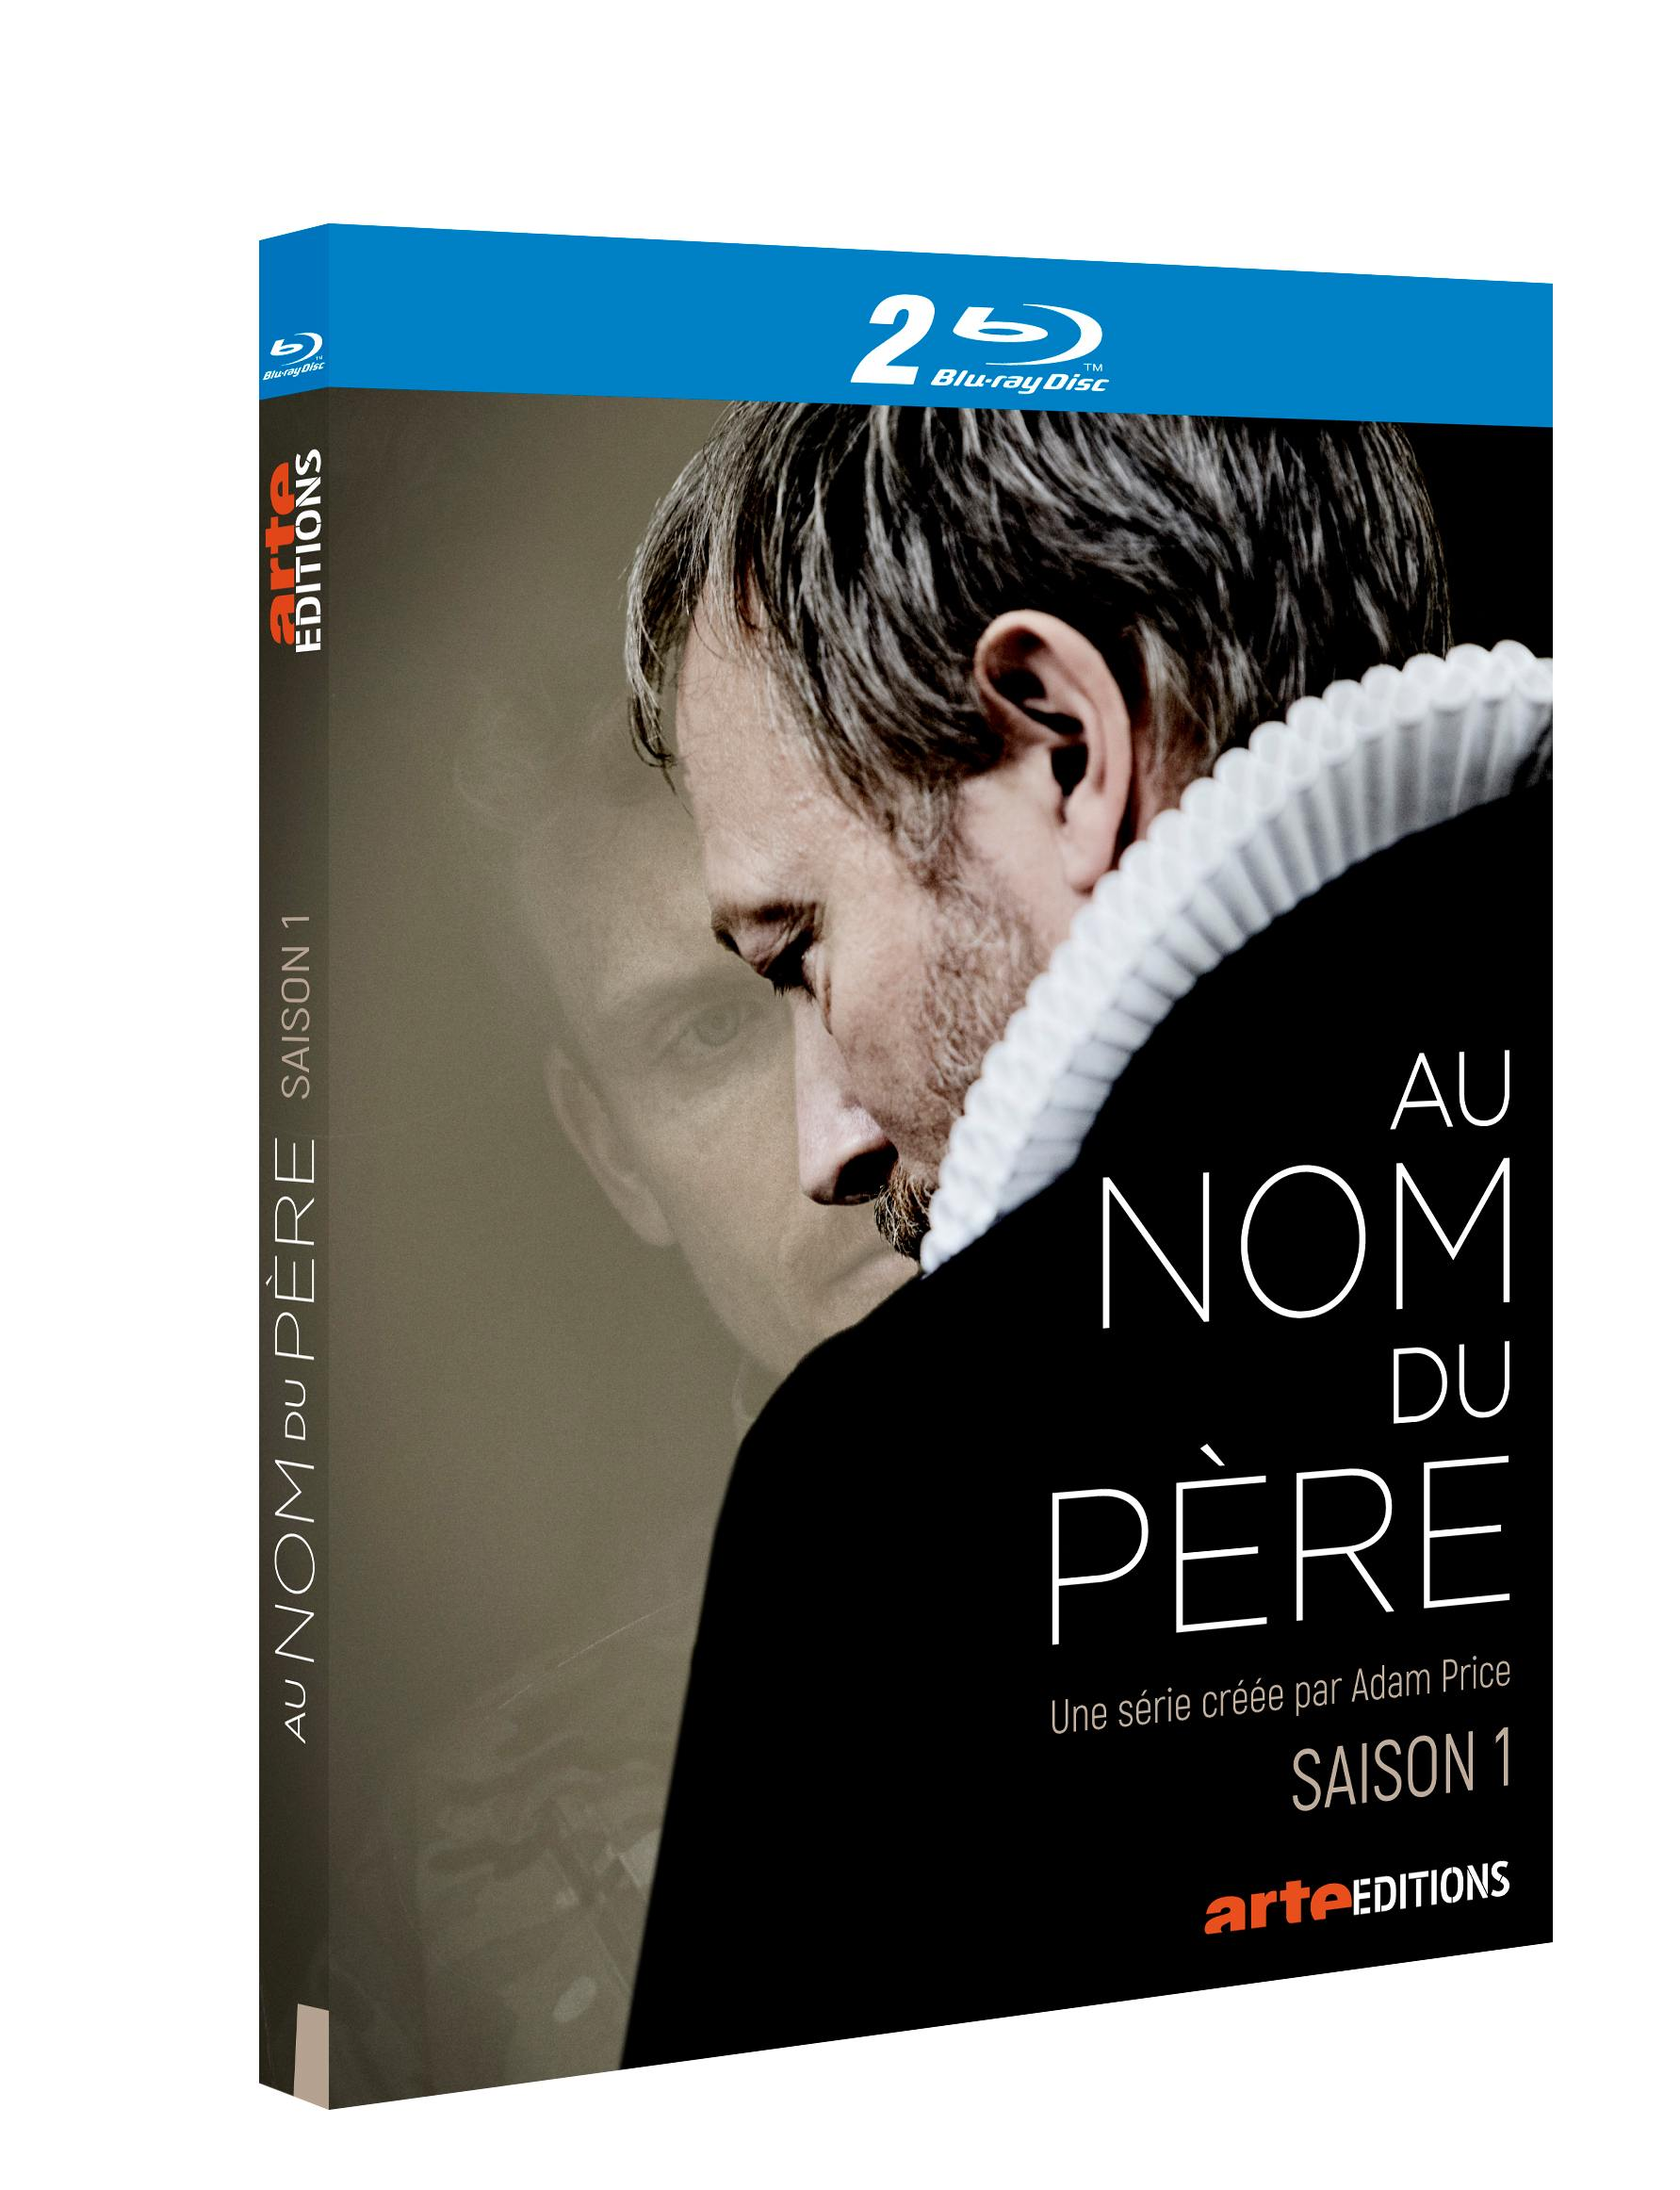 Au nom du pere - ride upon the storm s1 - 2 blu-ray